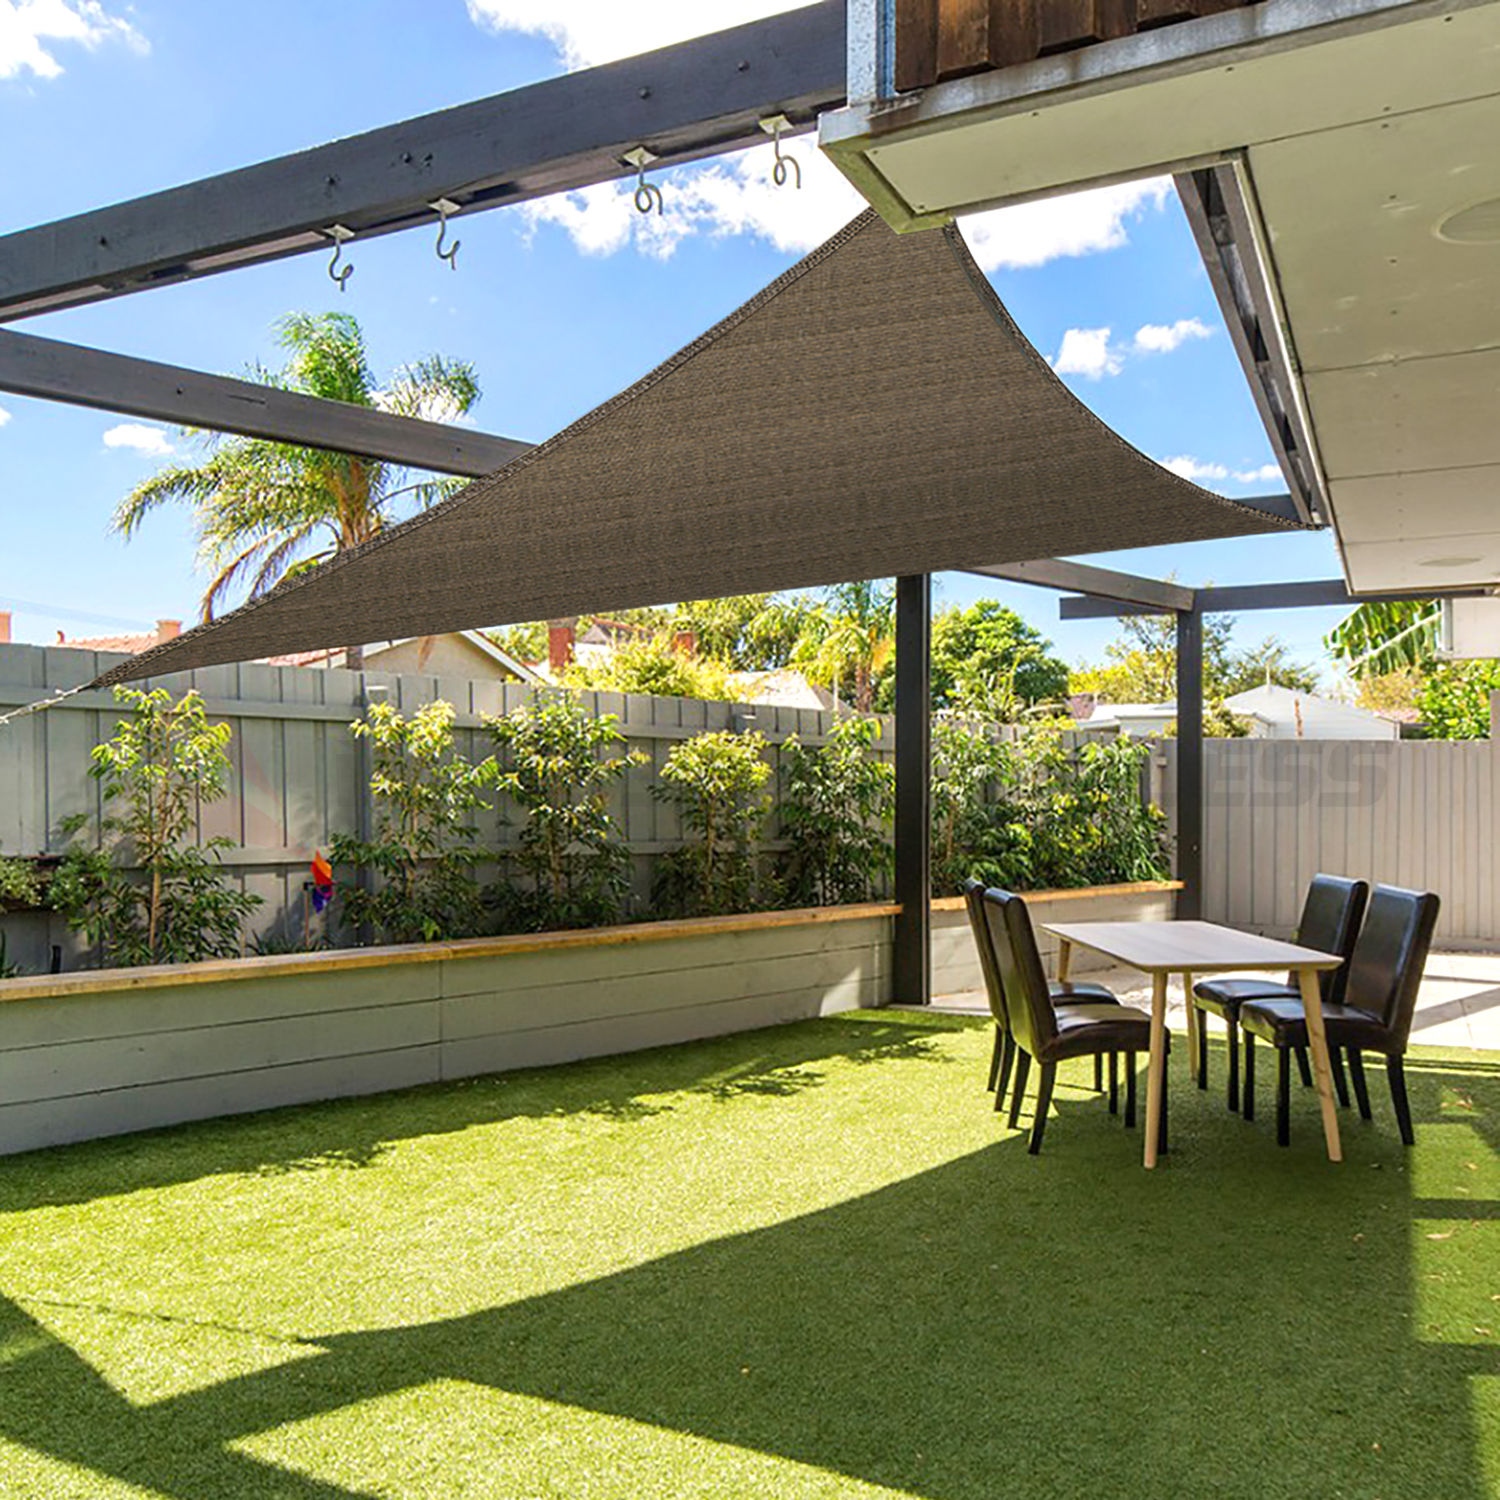 Benefits of a patio canopy